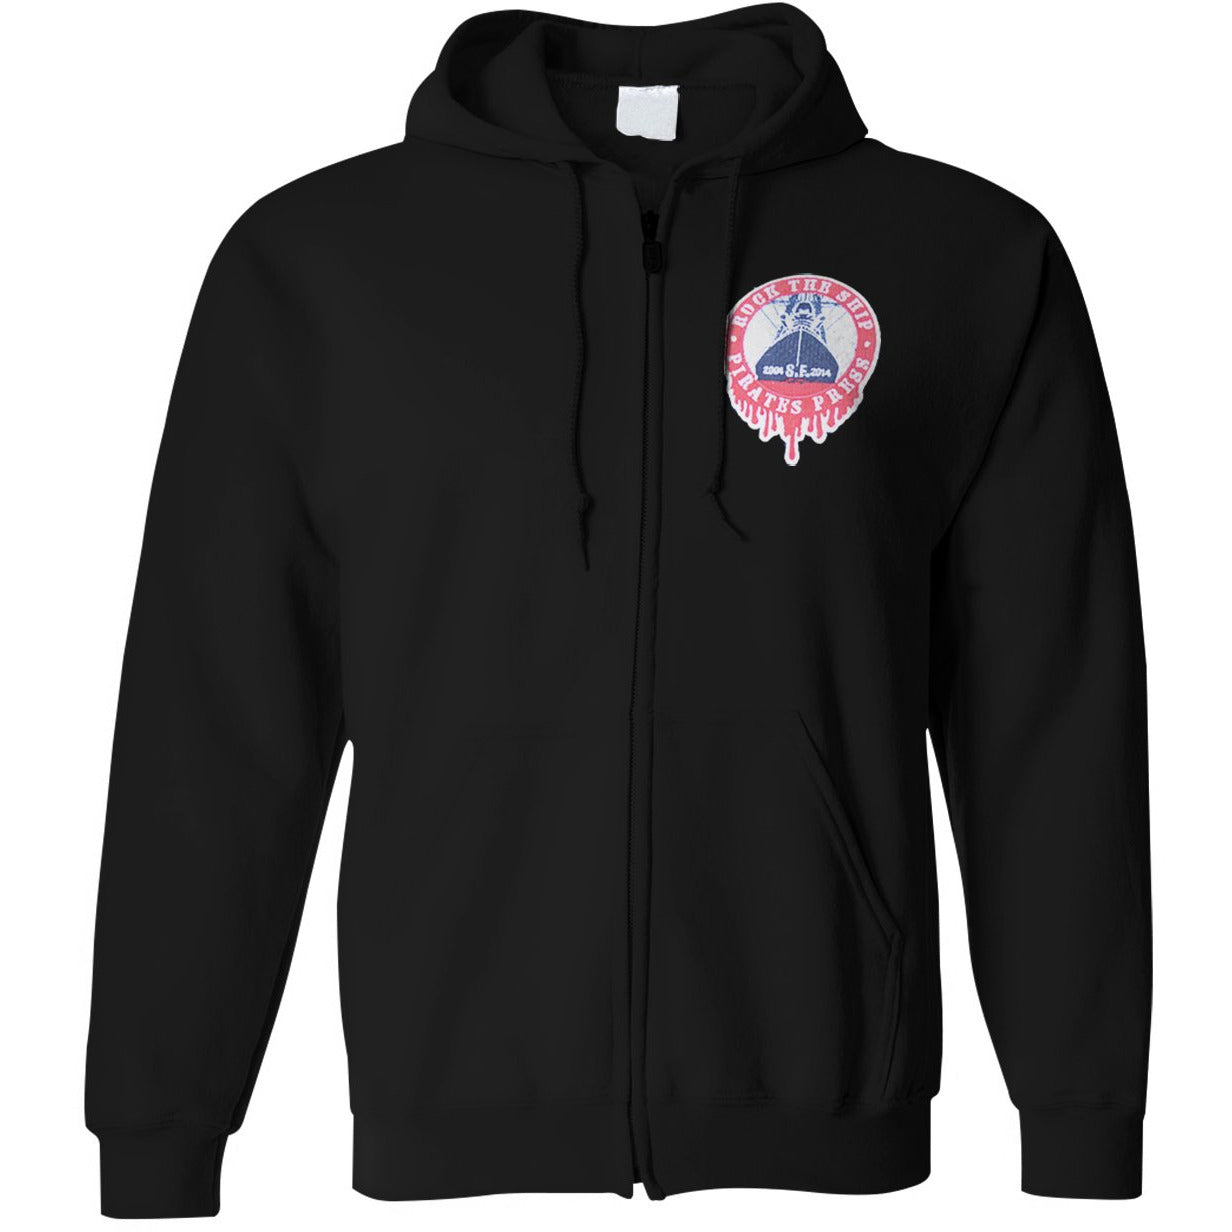 Pirates Press 10th Anniversary - Rock The Ship - Zip-Up Hoodie